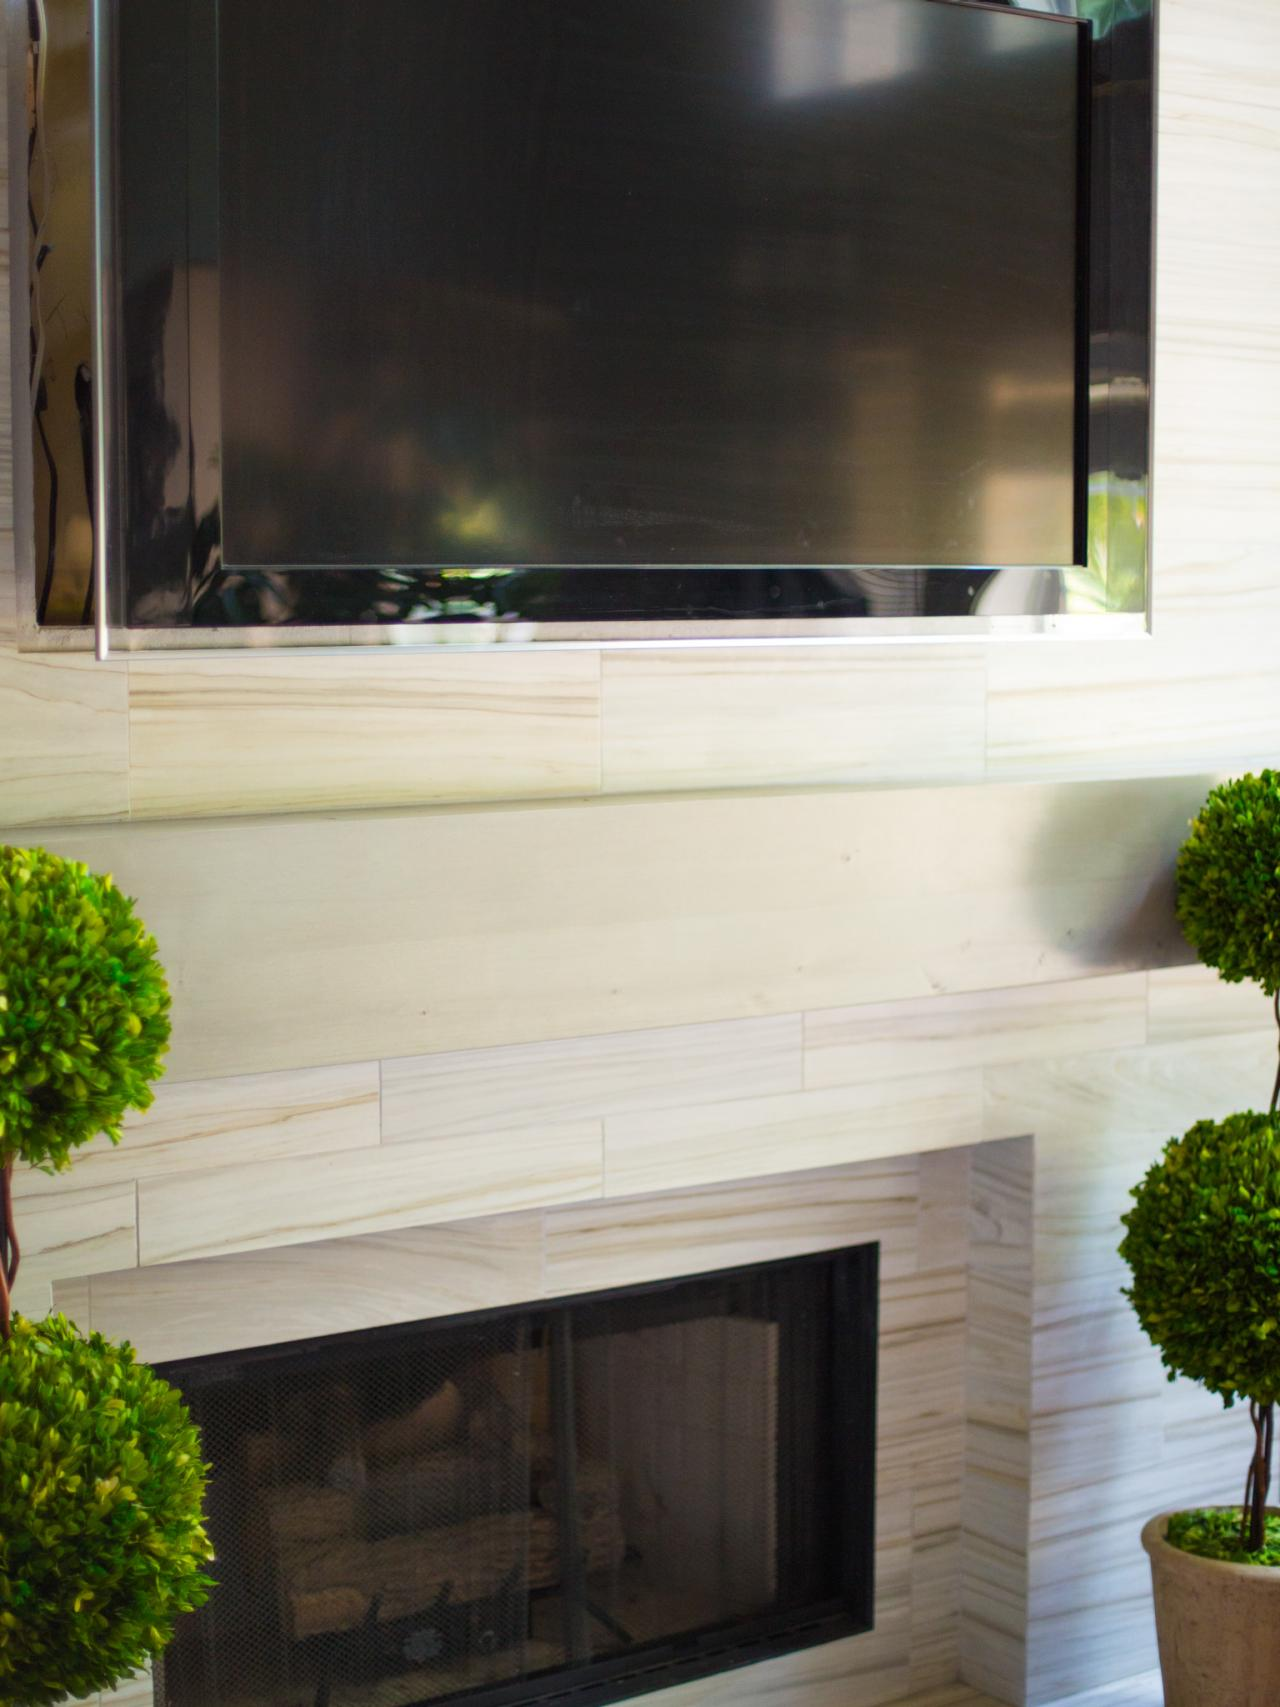 Tv Gas Fireplace Too Hot Fireplace Ideas